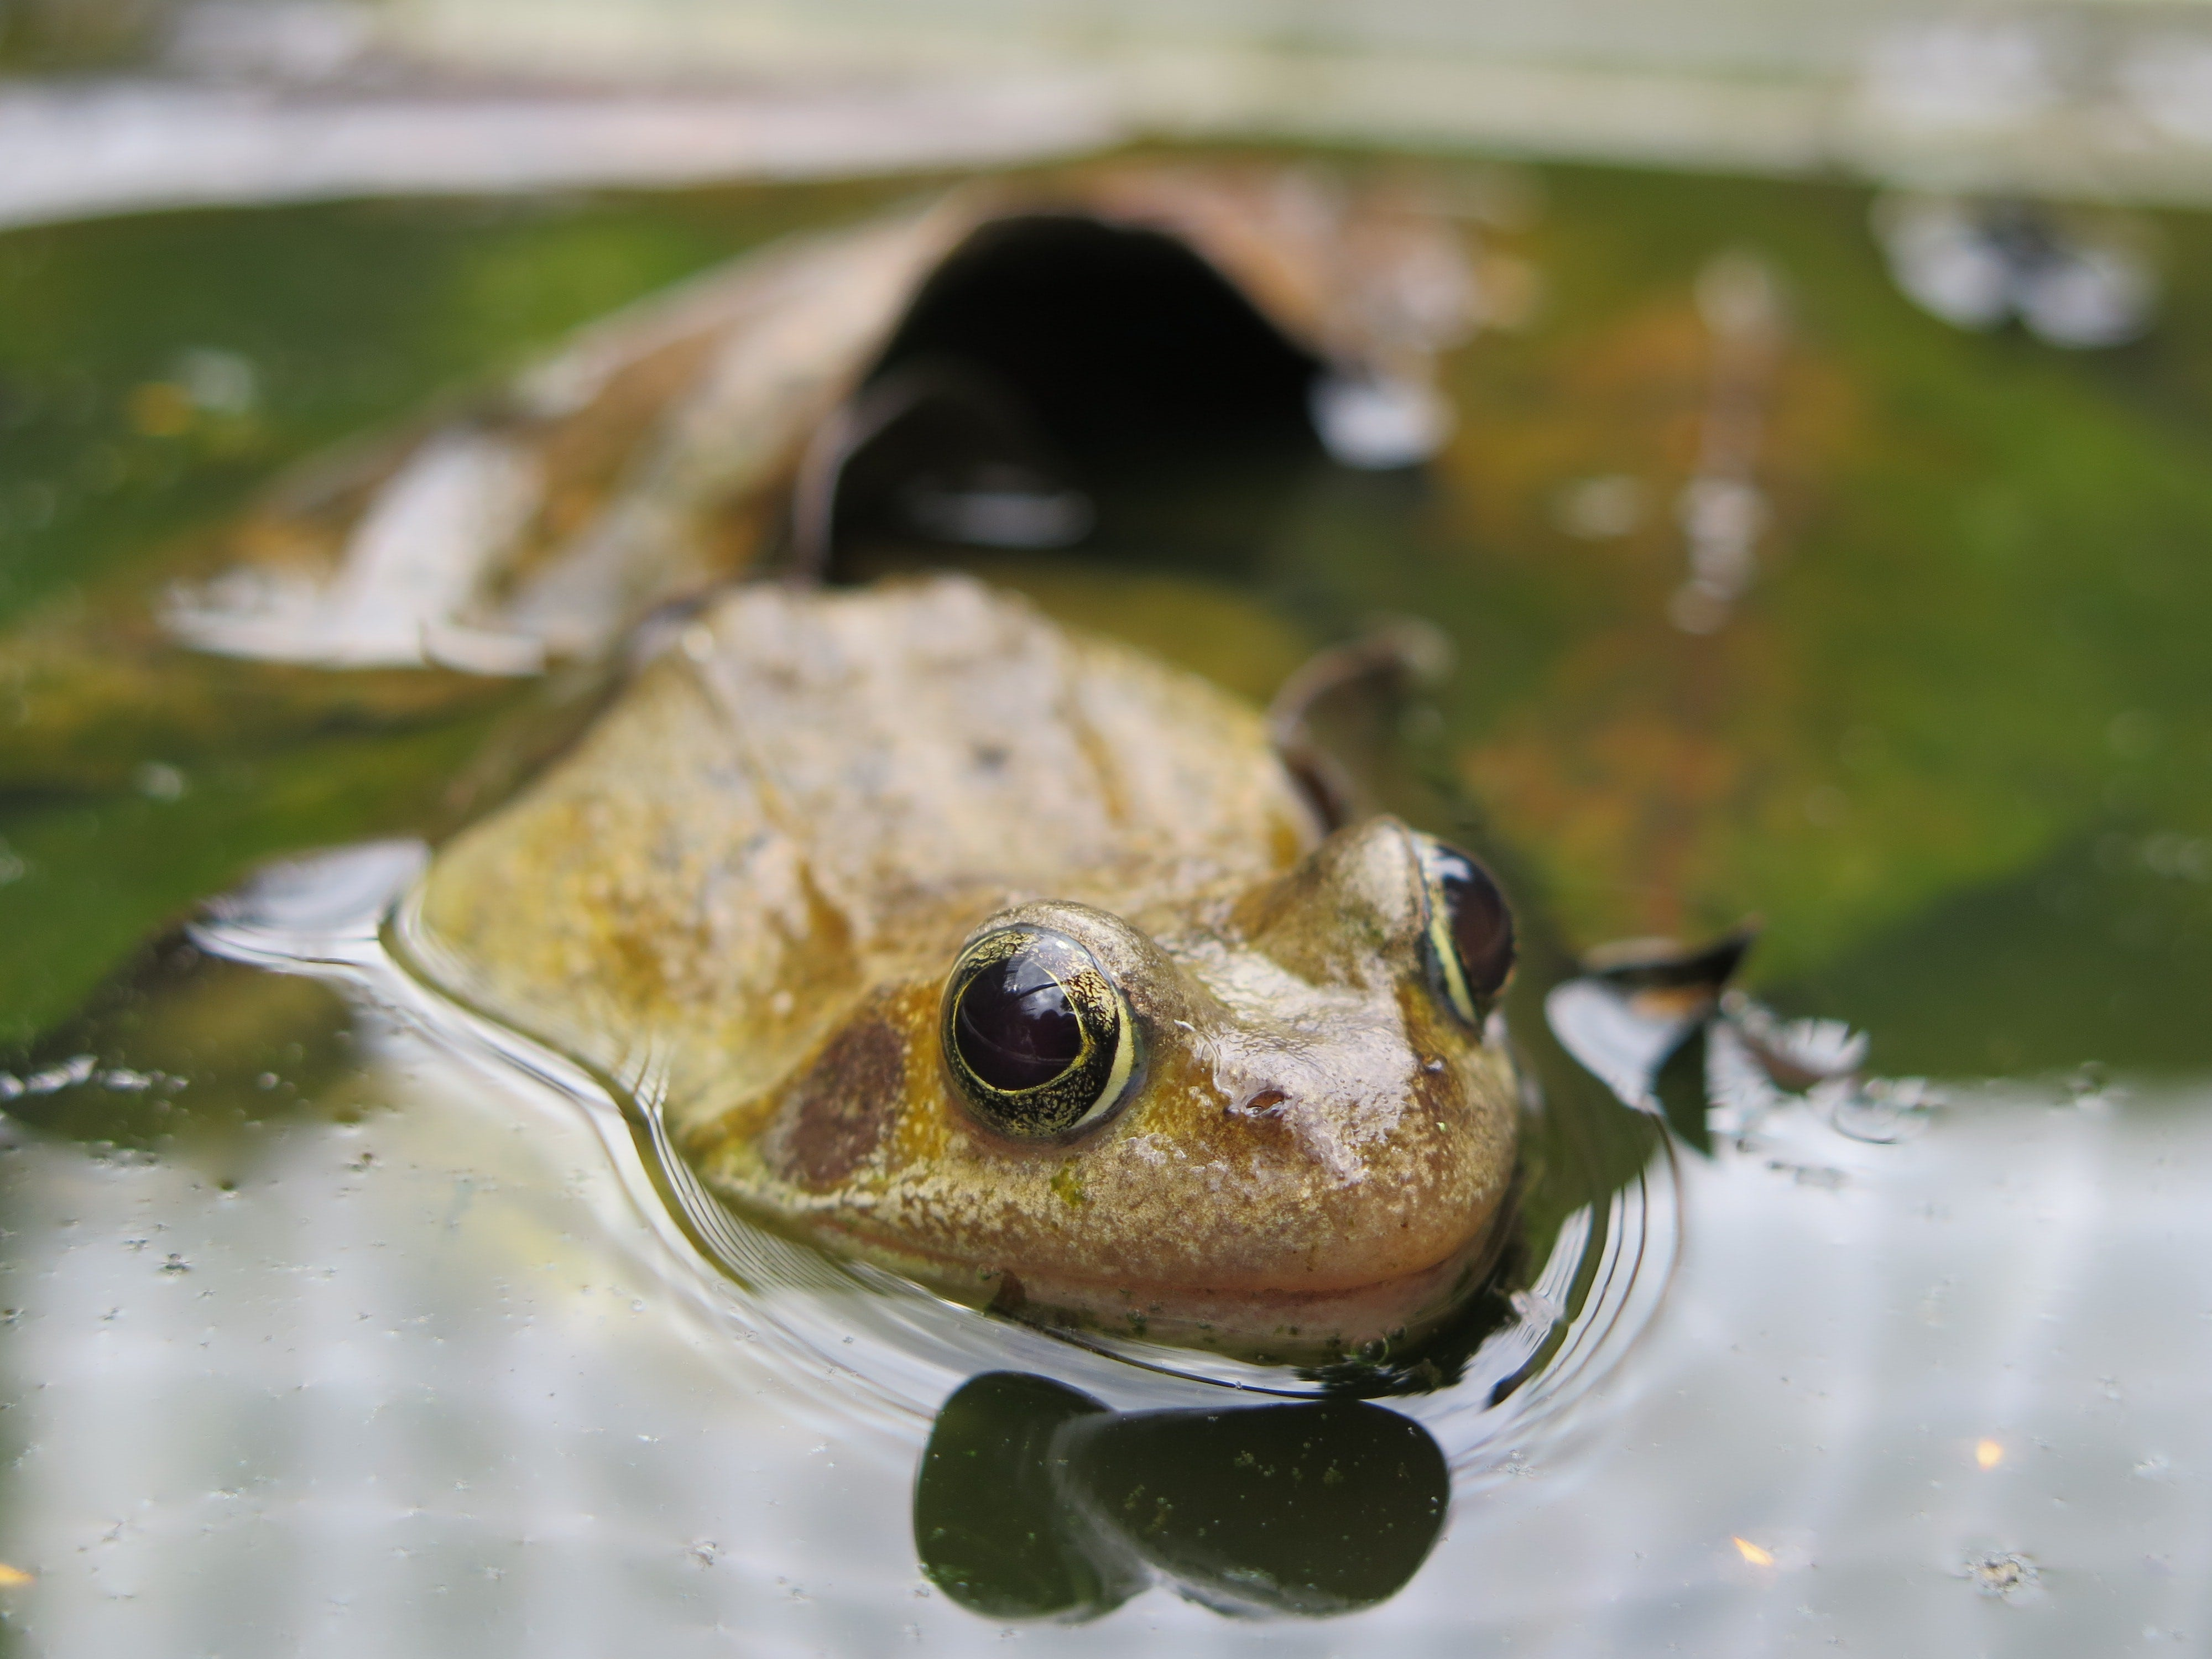 A frog, half-submerged in pond water